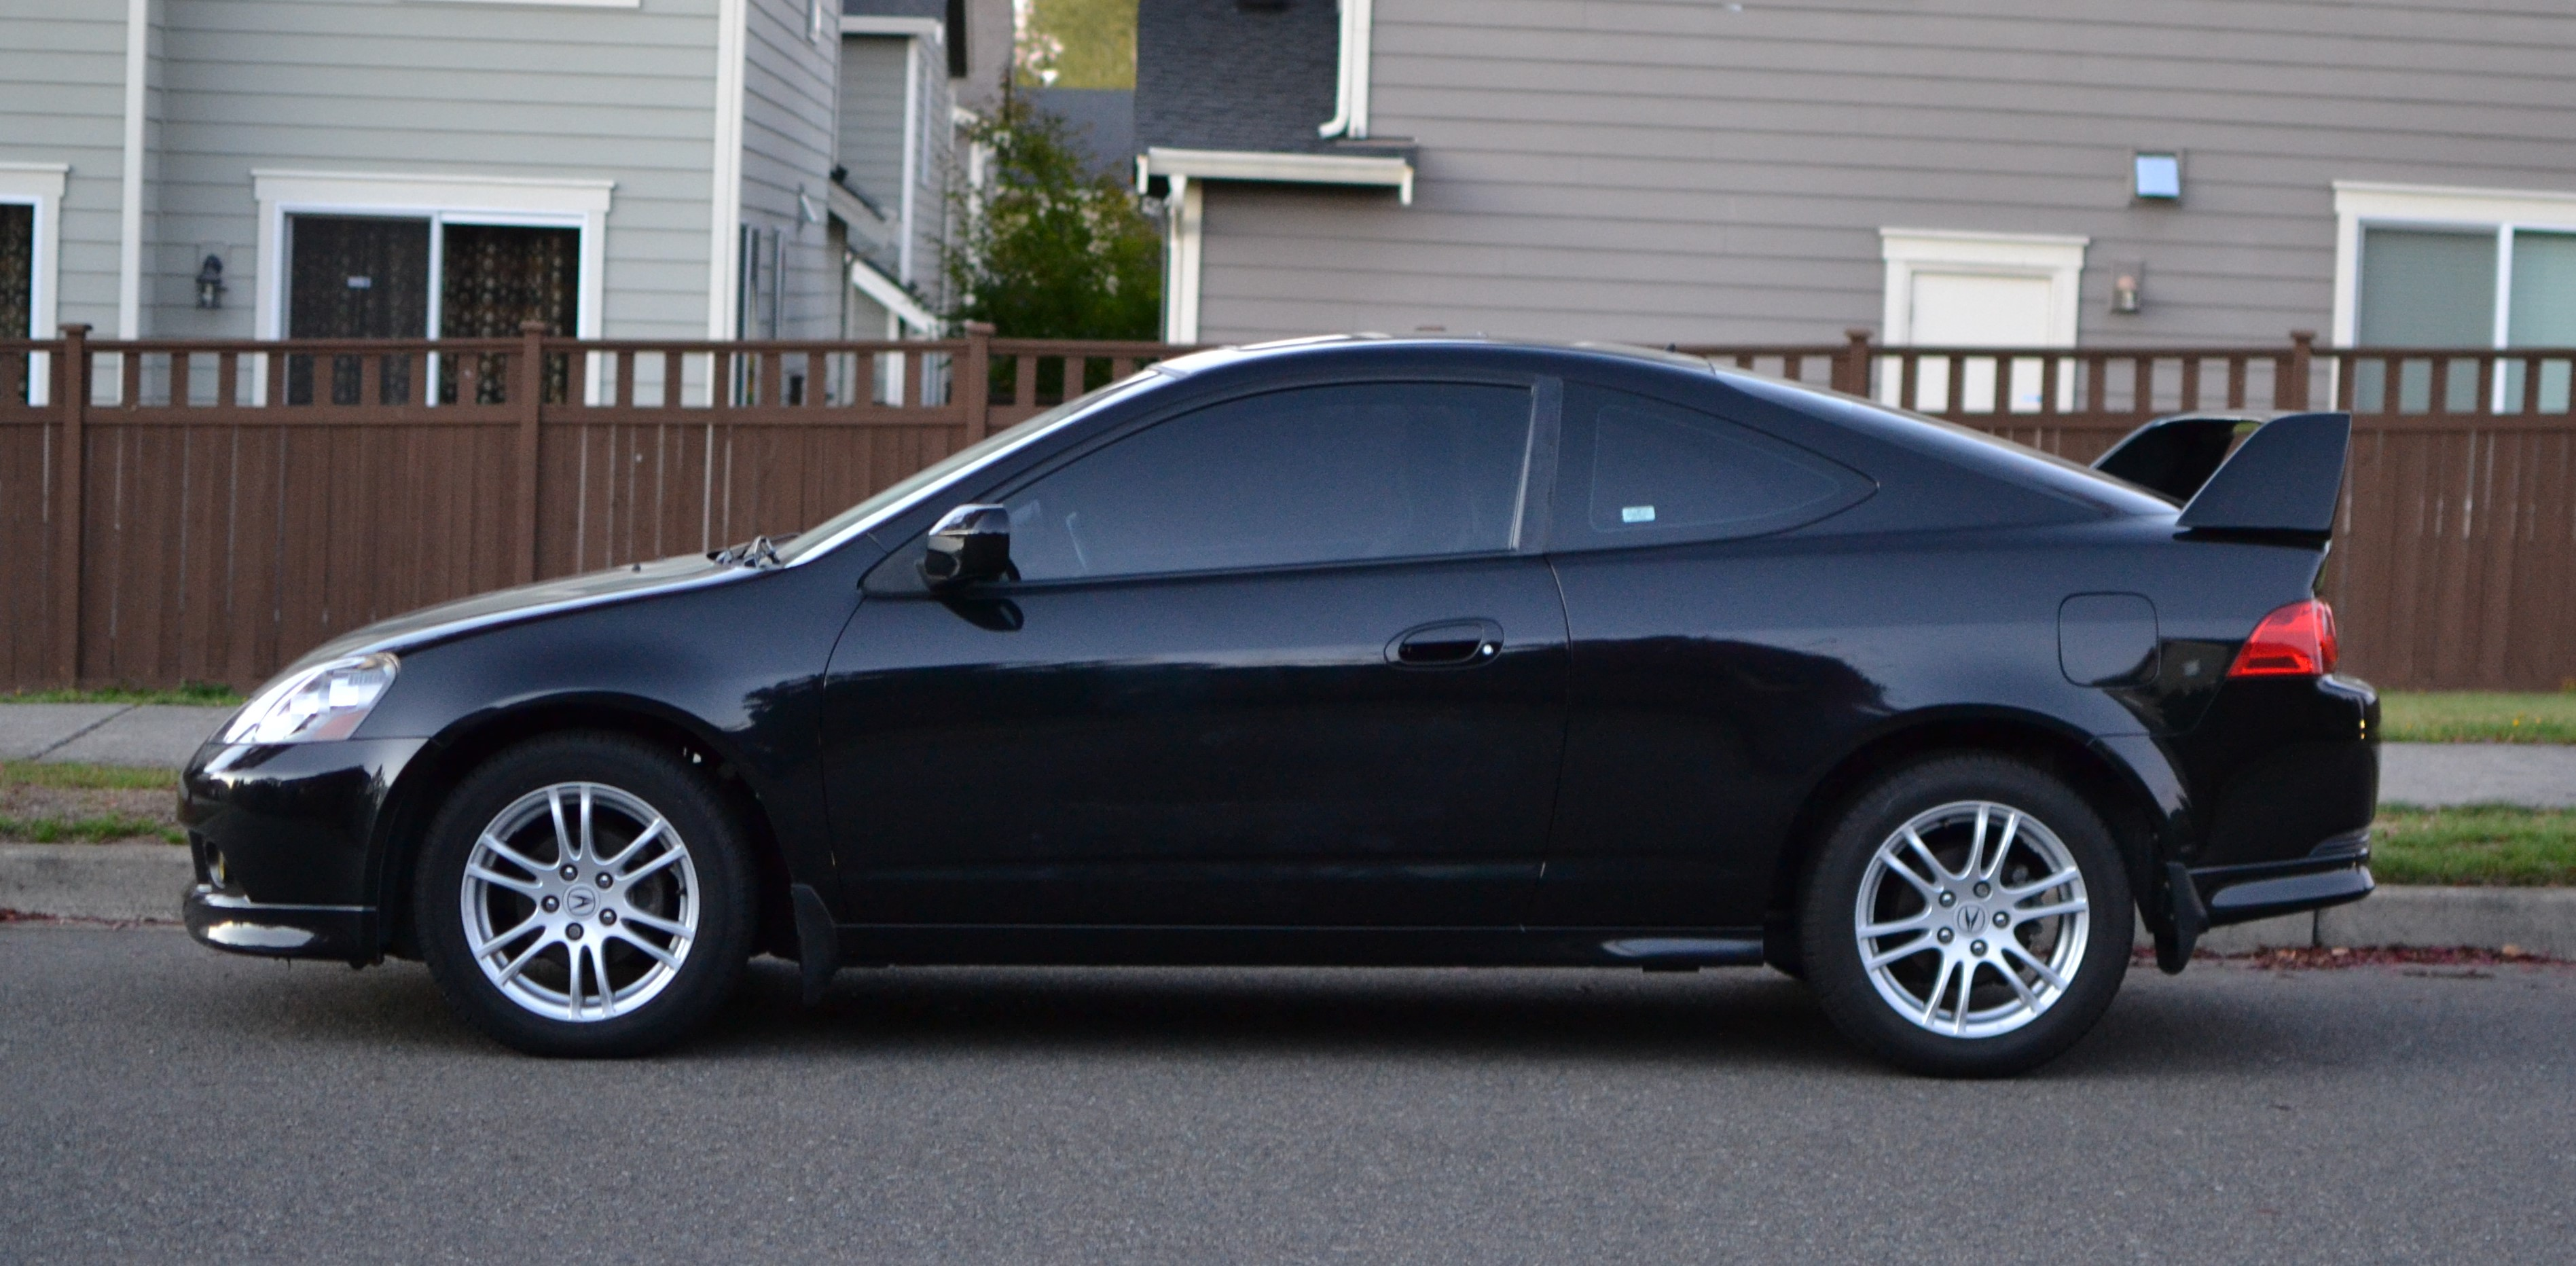 Used 2006 Acura RSX For Sale in Bothell WA